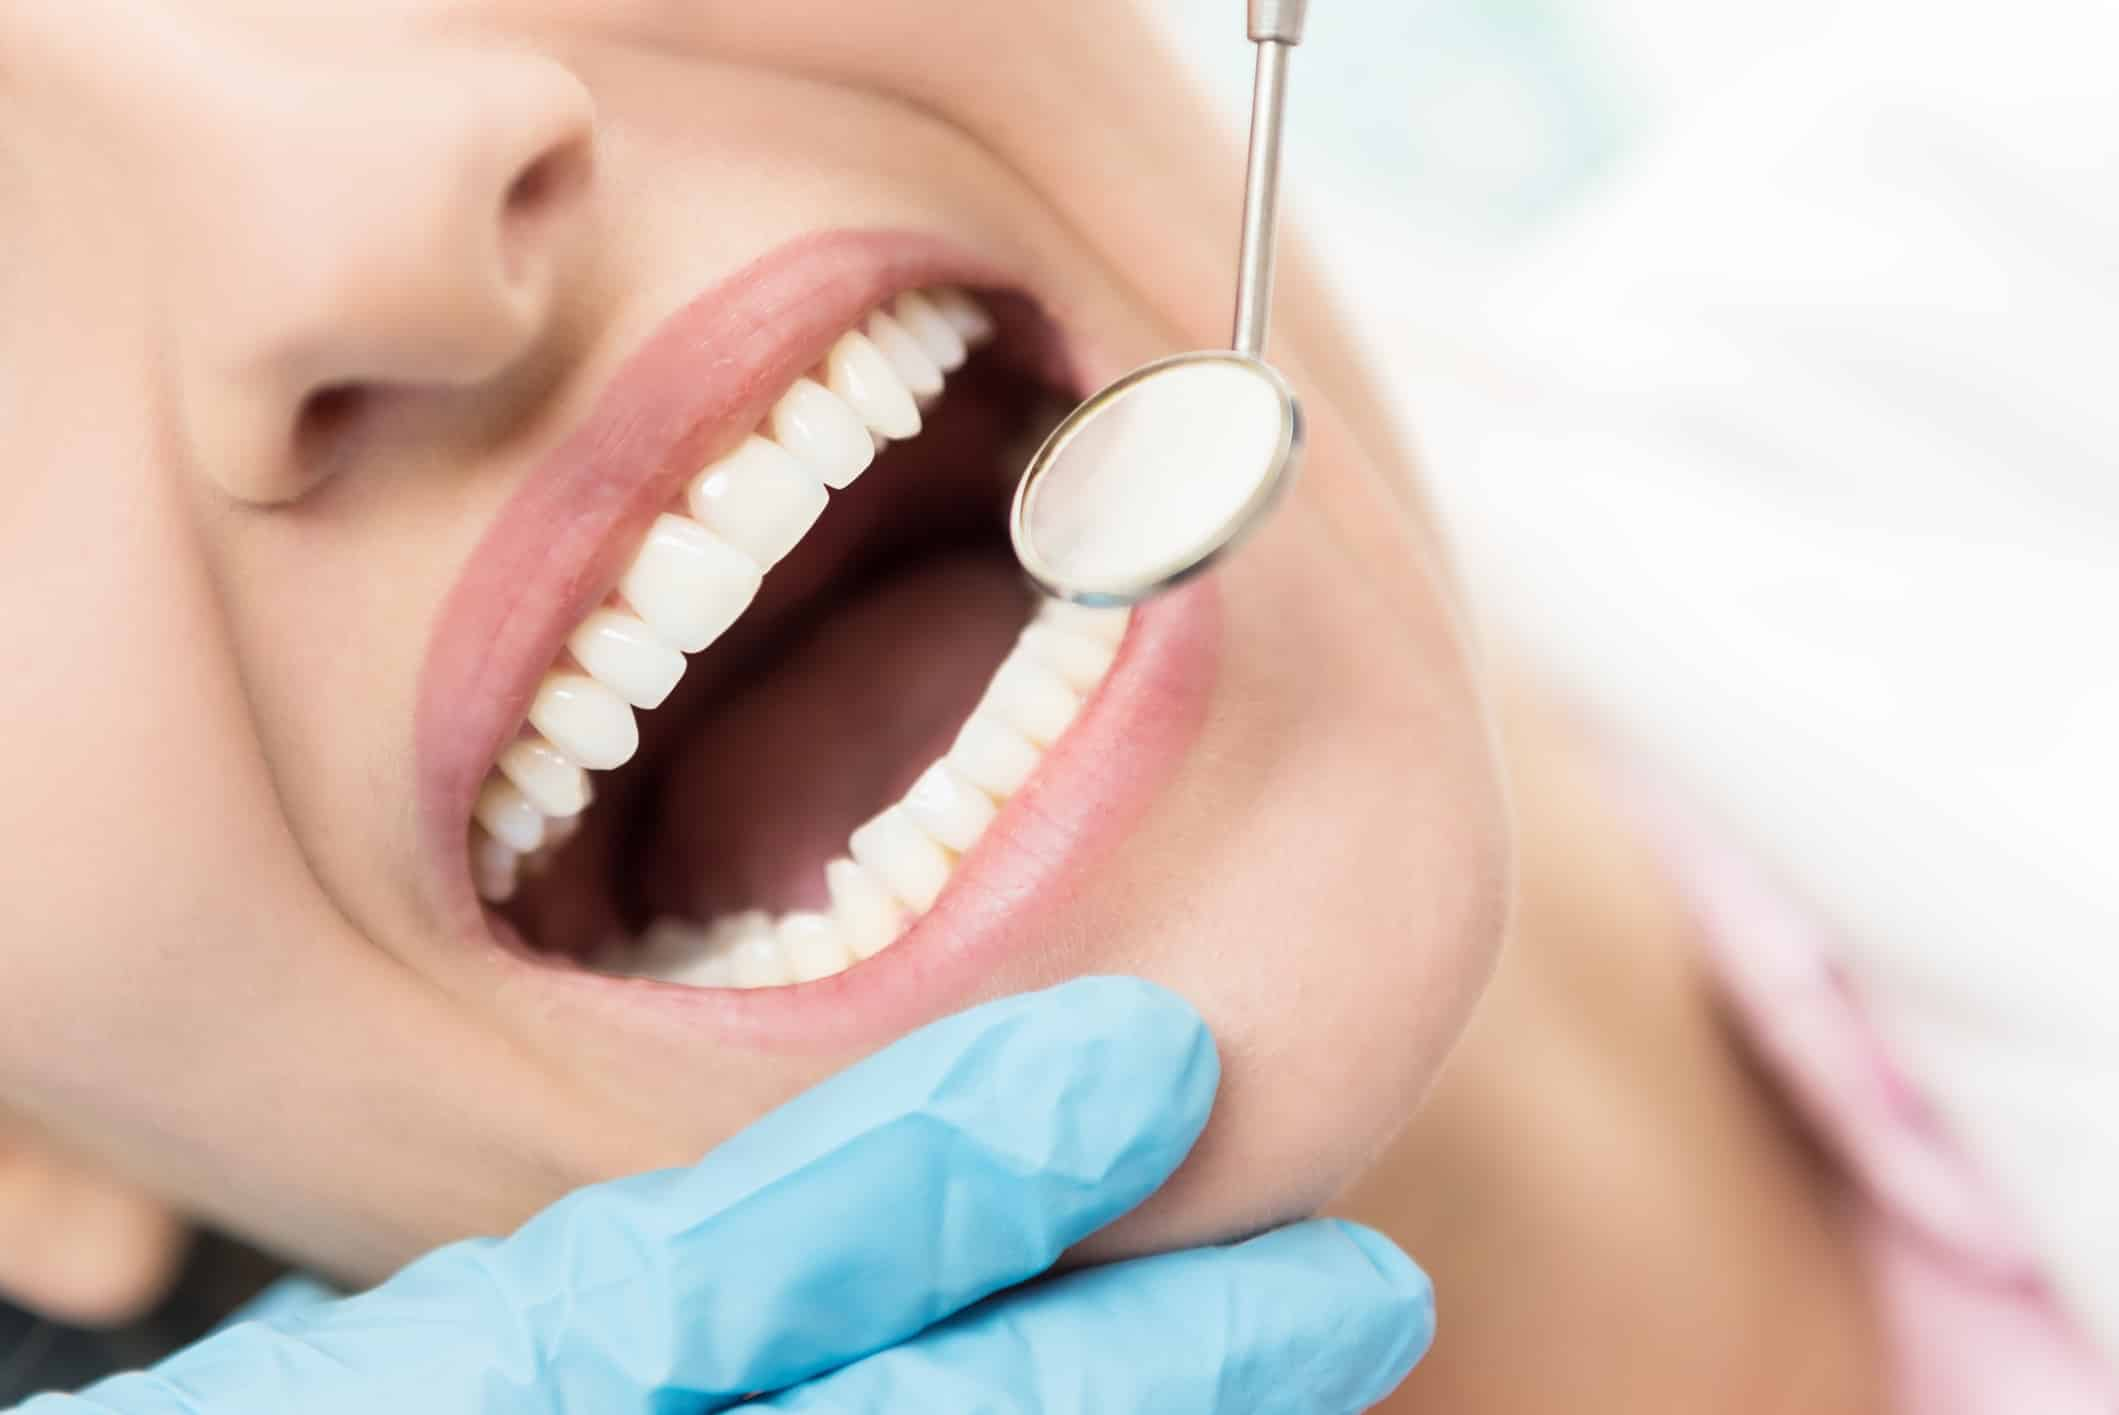 cosmetic dentistry vs general dentistry